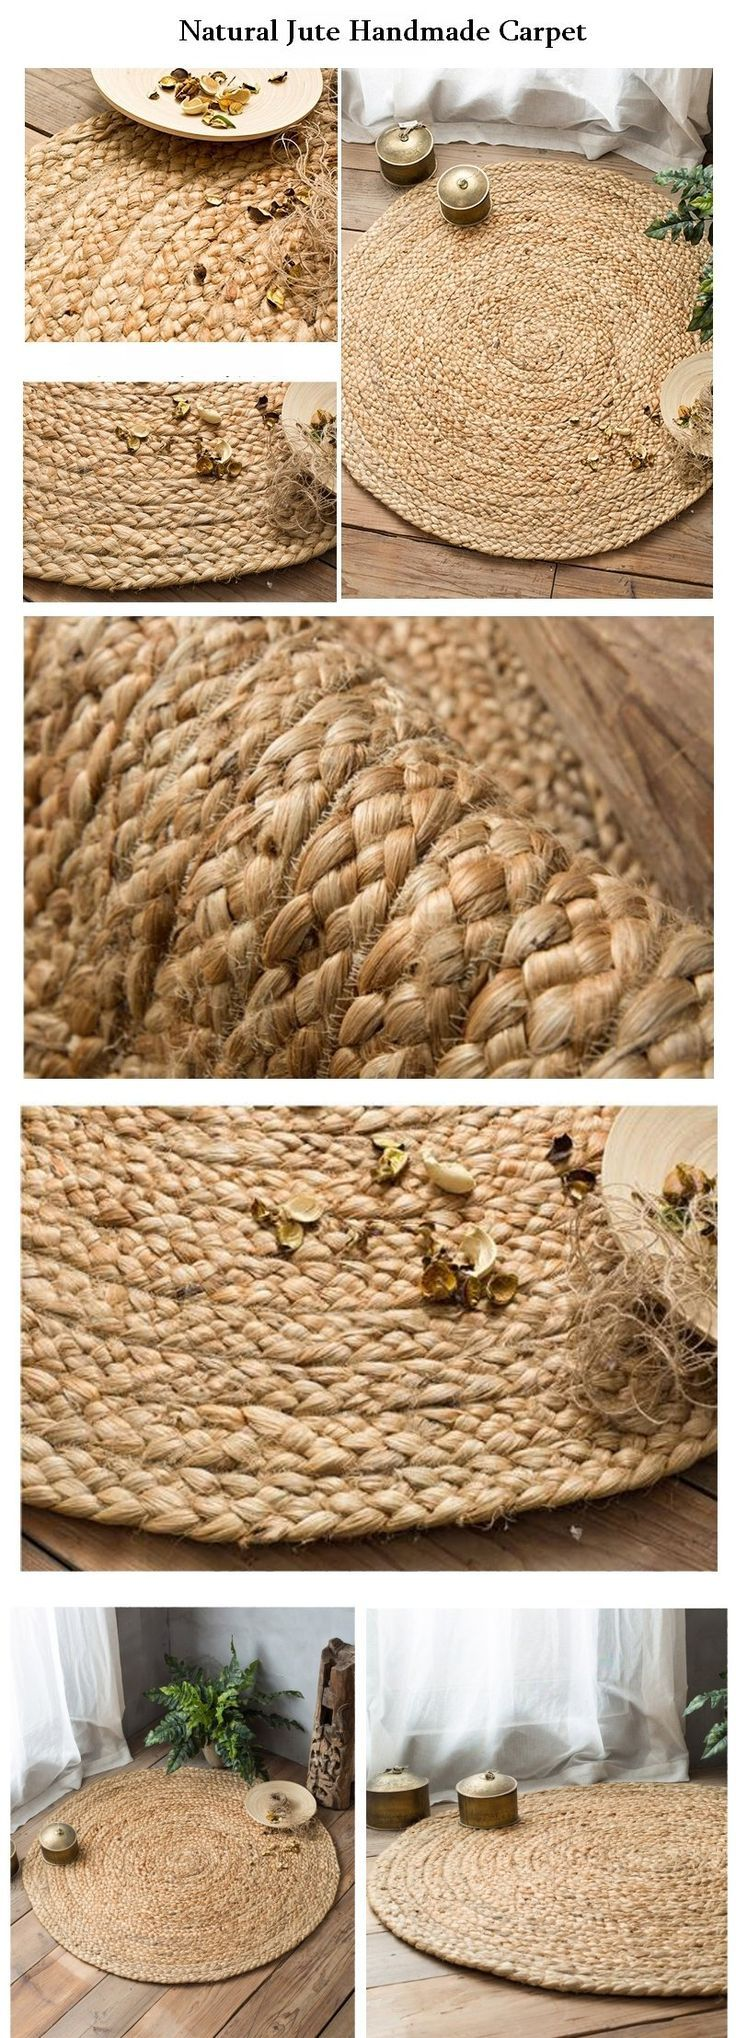 handmade india jute floor carpet round and rugs natural color housewarming ts ideas pinterest on also rh